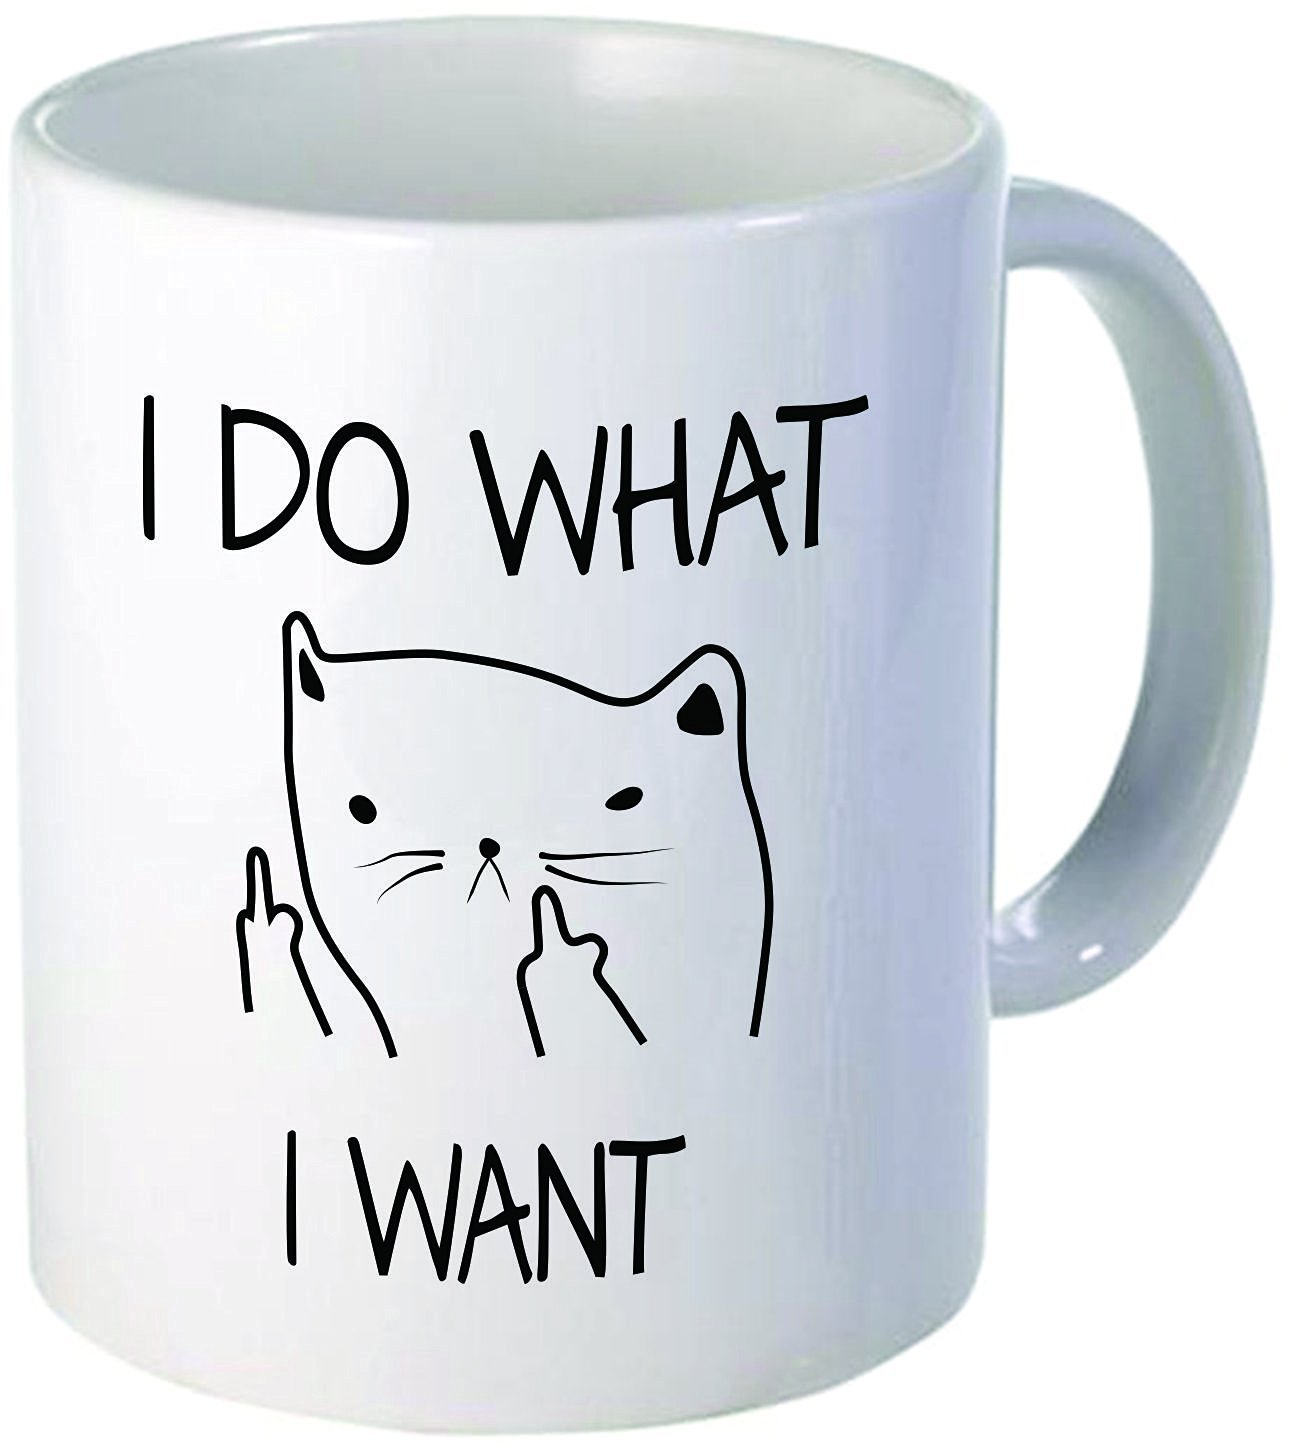 A I Do What I Want Cat A Thin CatCeramic Mug Funny Coffee Mug